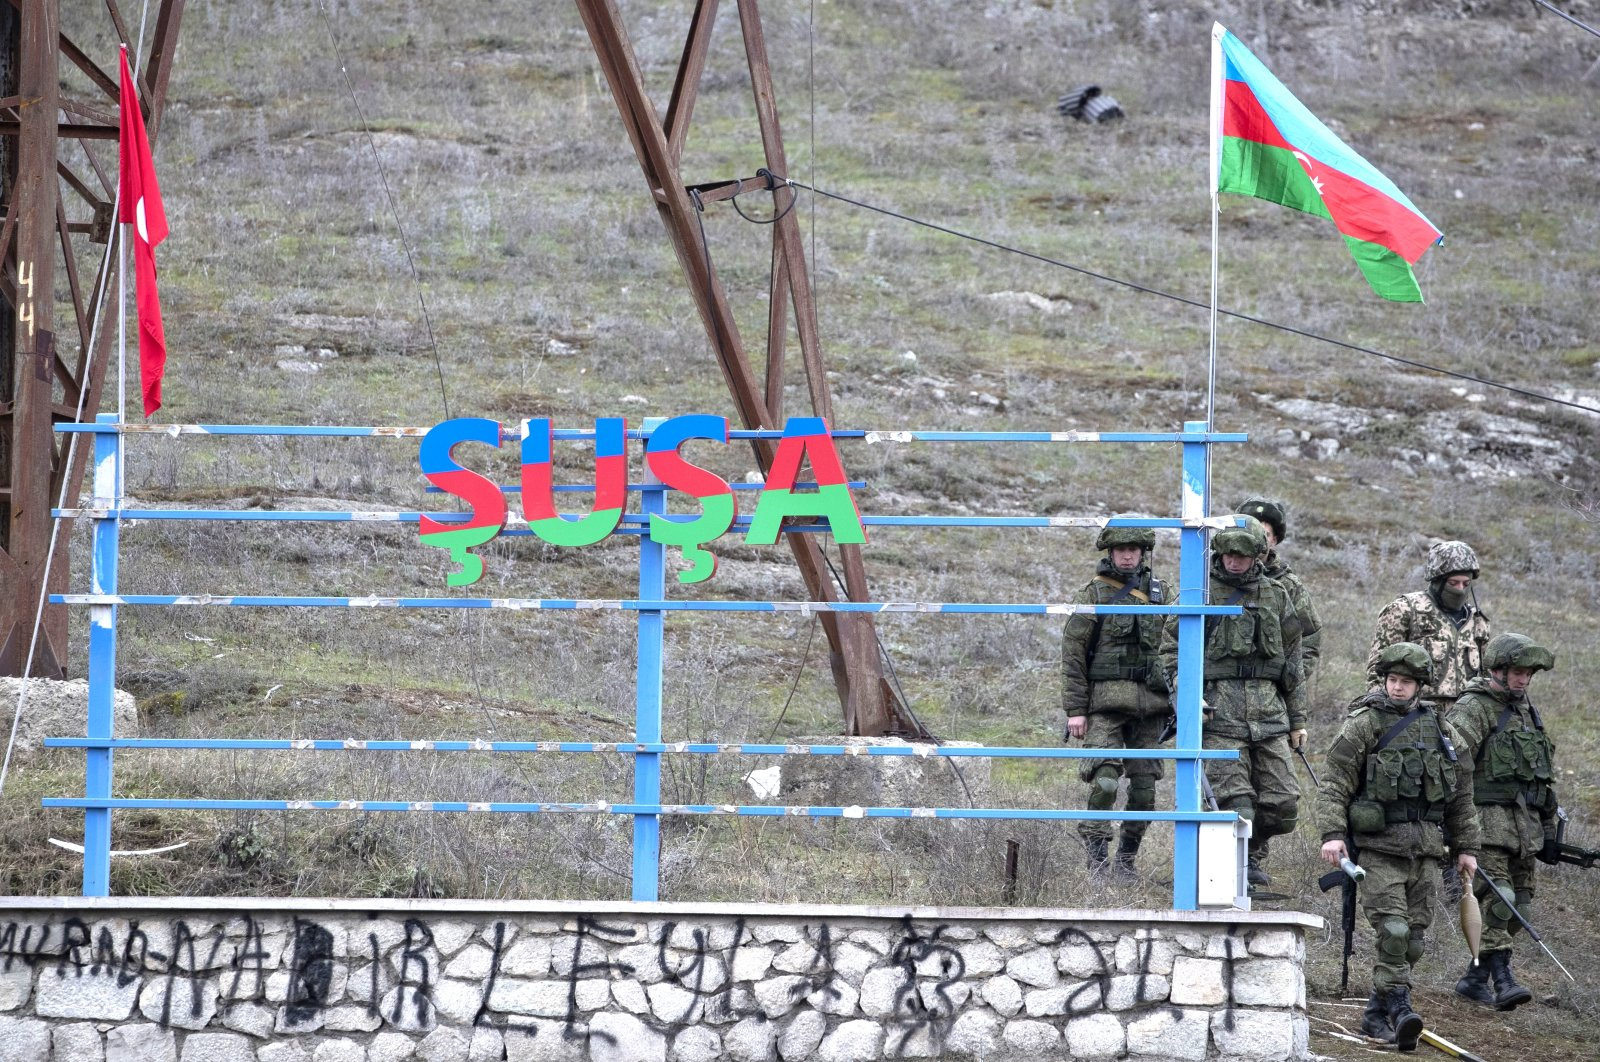 Russian peacekeepers and Azerbaijani servicepeople patrol the area at the entrance to the town of Shusha, Azerbaijan, Nov. 26, 2020. (Photo by Getty Images)